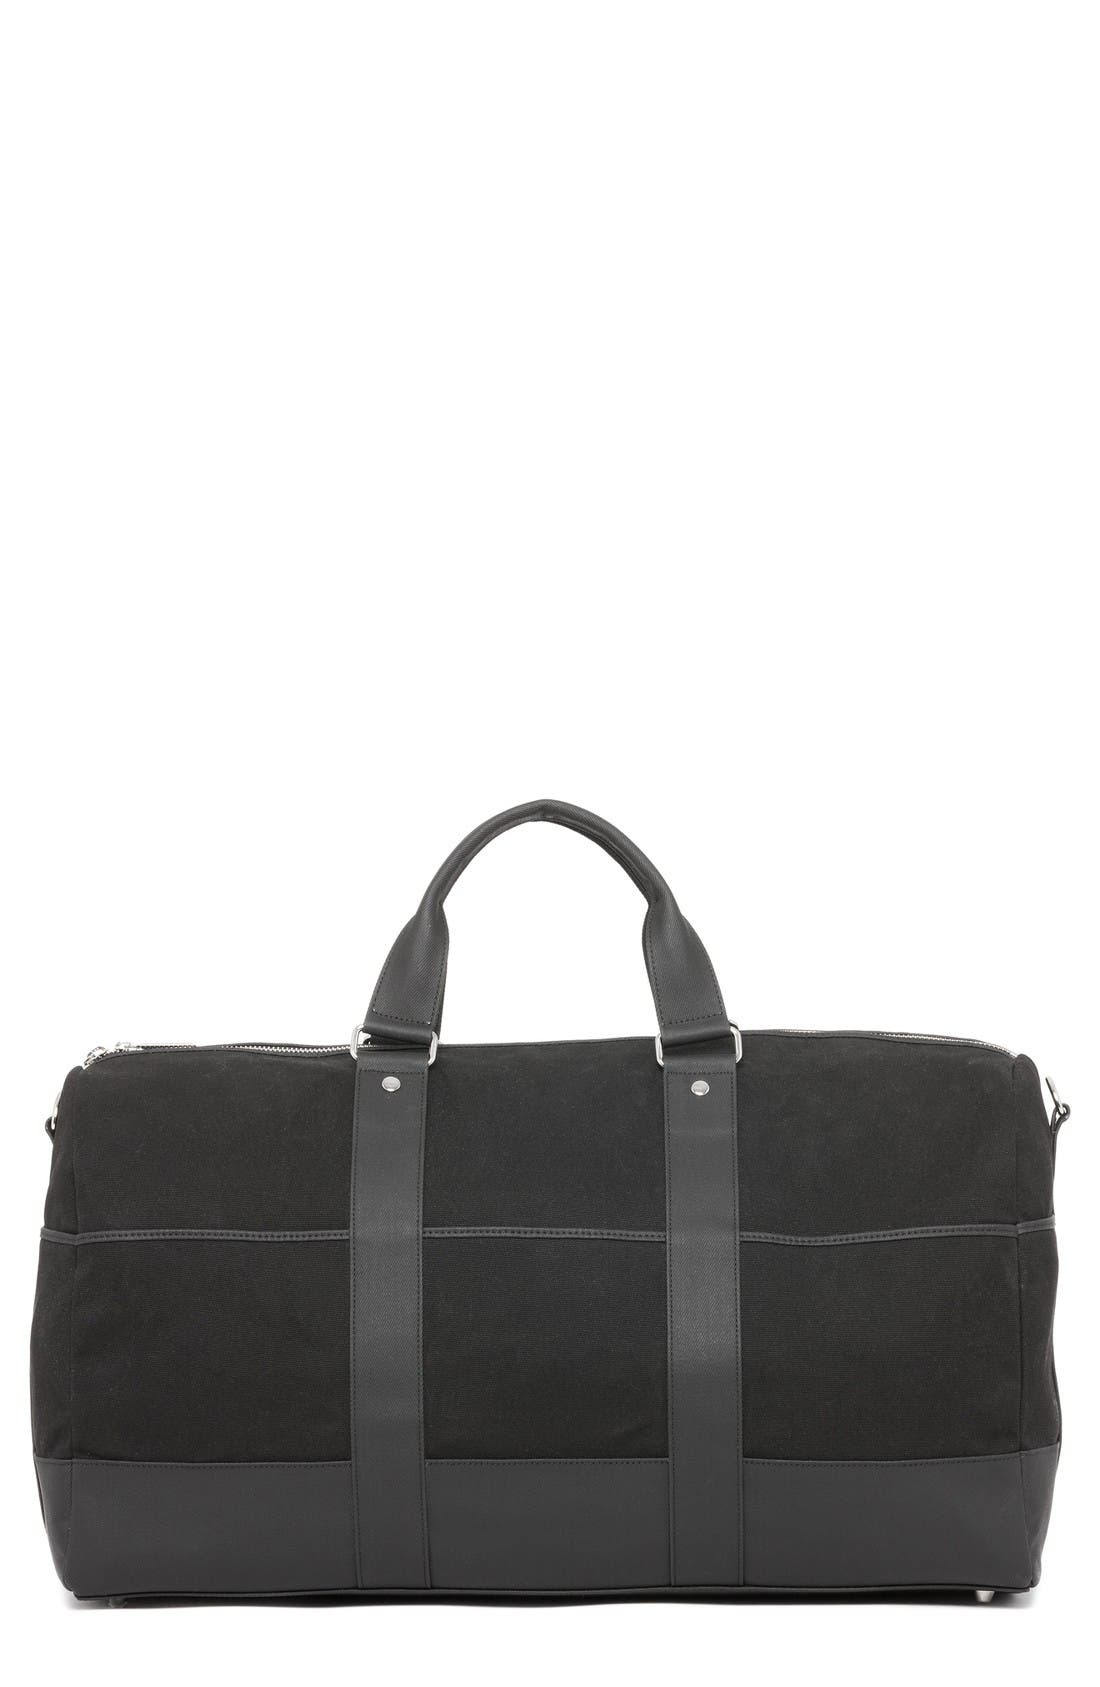 Alternate Image 3  - hook + ALBERT Gym Duffel Bag